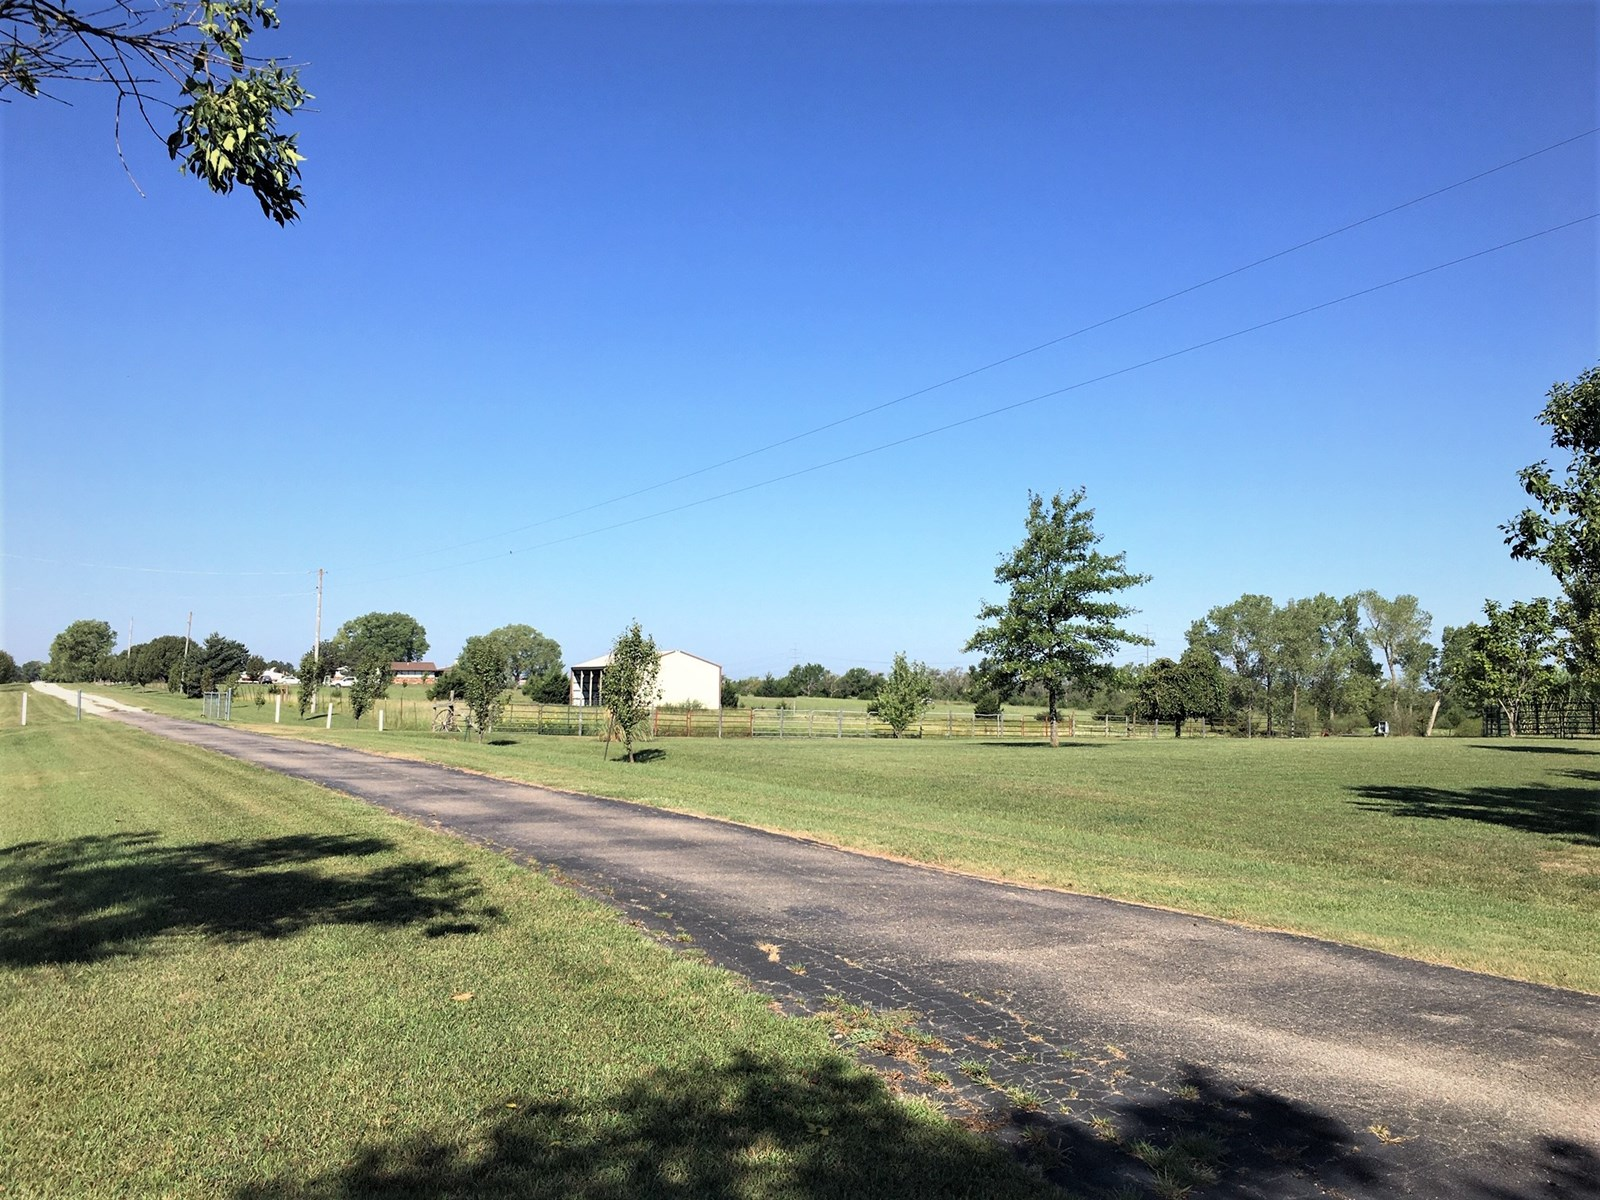 10.62 ACRE BUILDING SITE, UTILITIES, BARN, BLDG, WICHITA KS